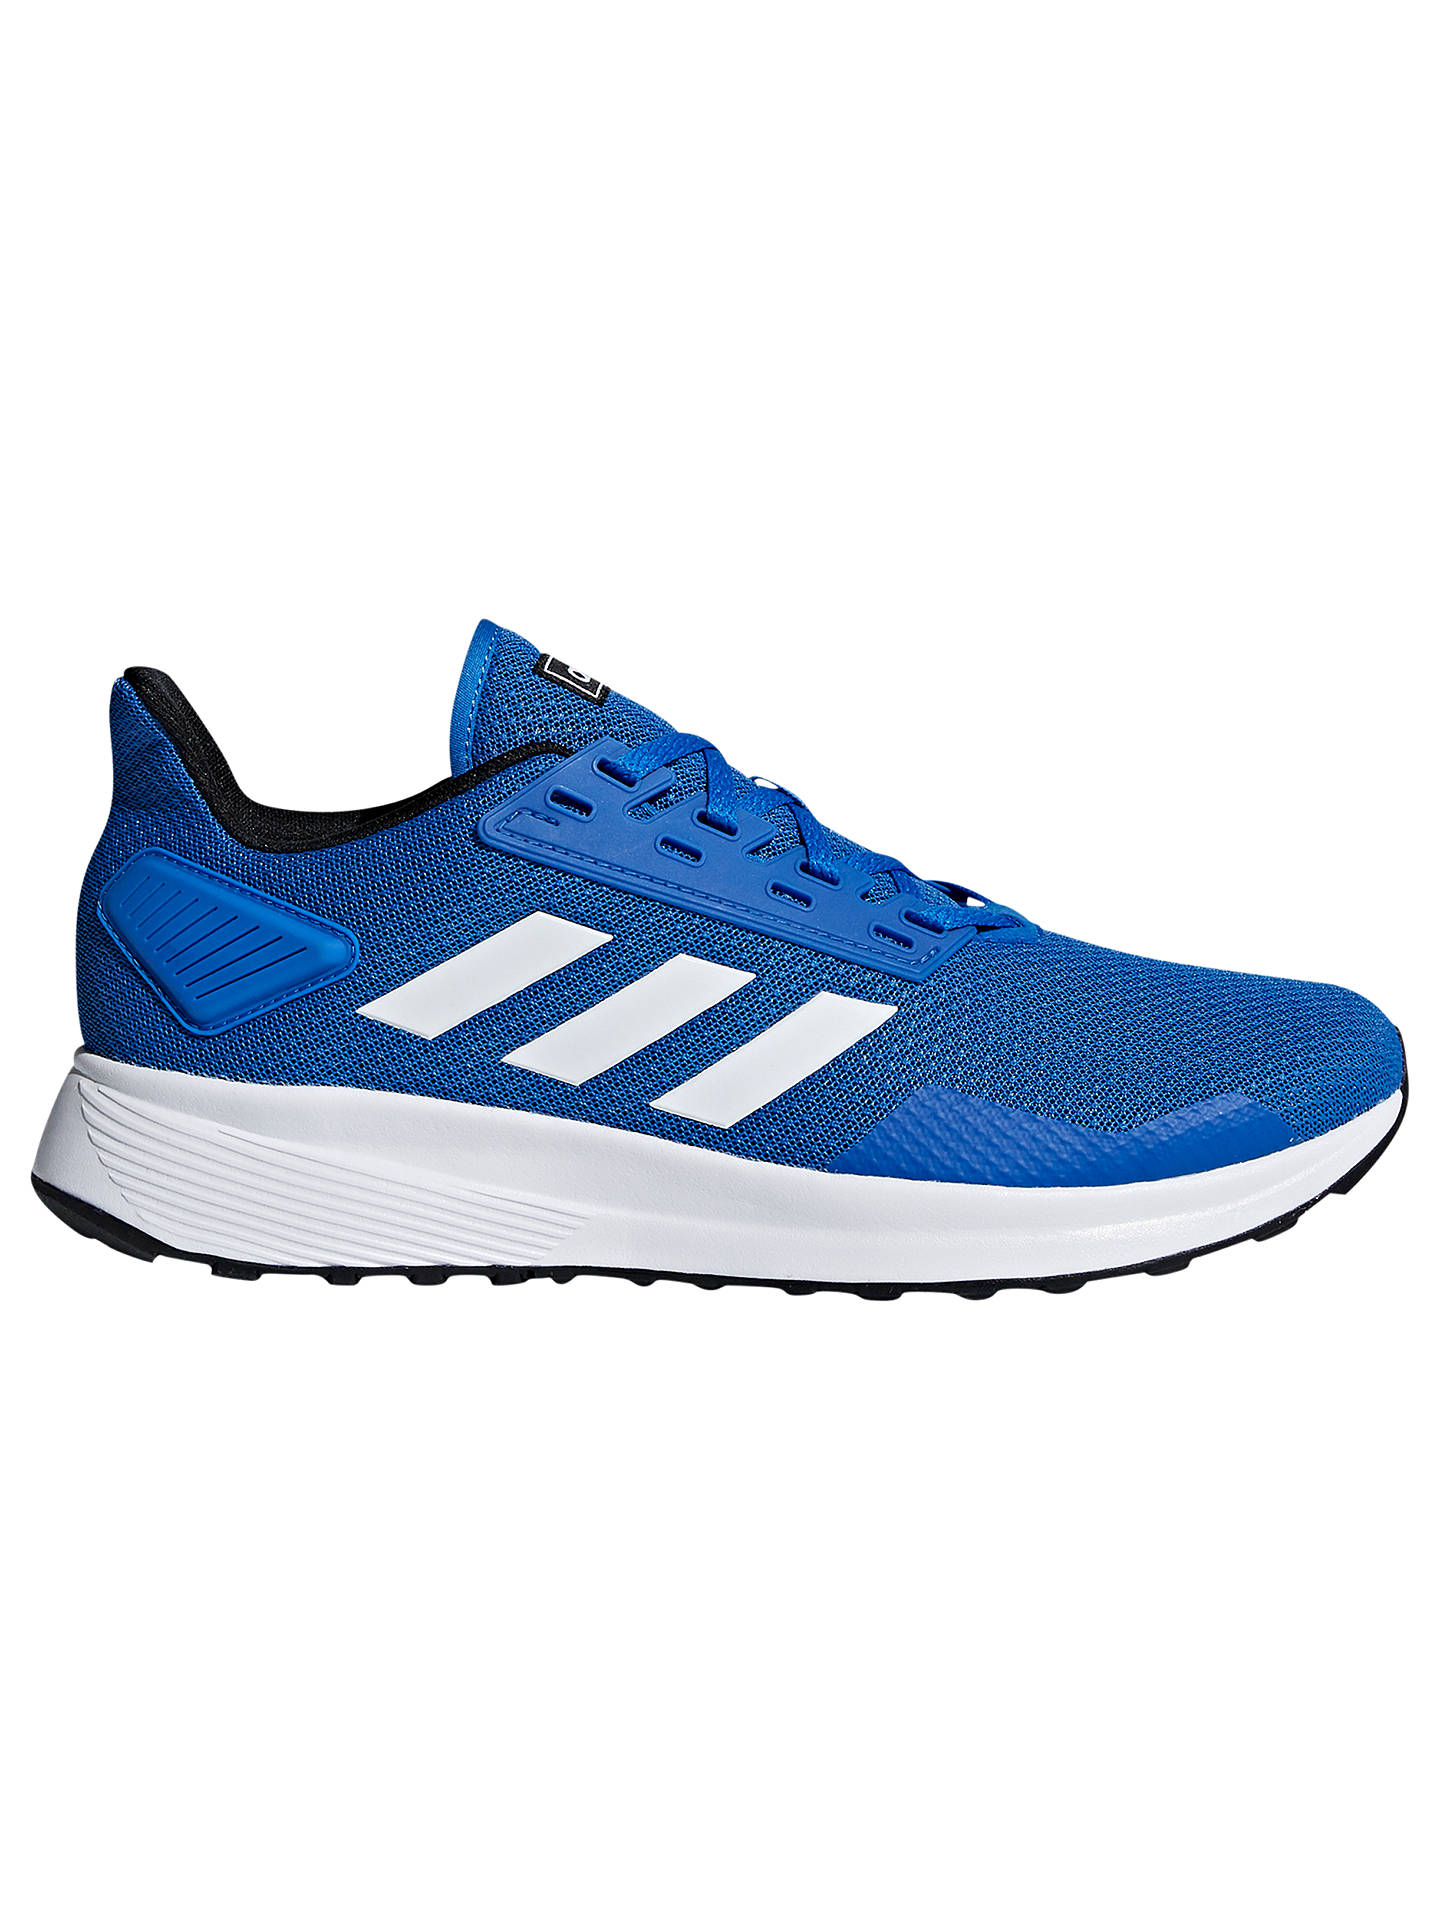 Adidas Duramo 9 Mens Running Shoes Cushioned Sports Trainers Blue Clothing, Shoes & Accessories Men